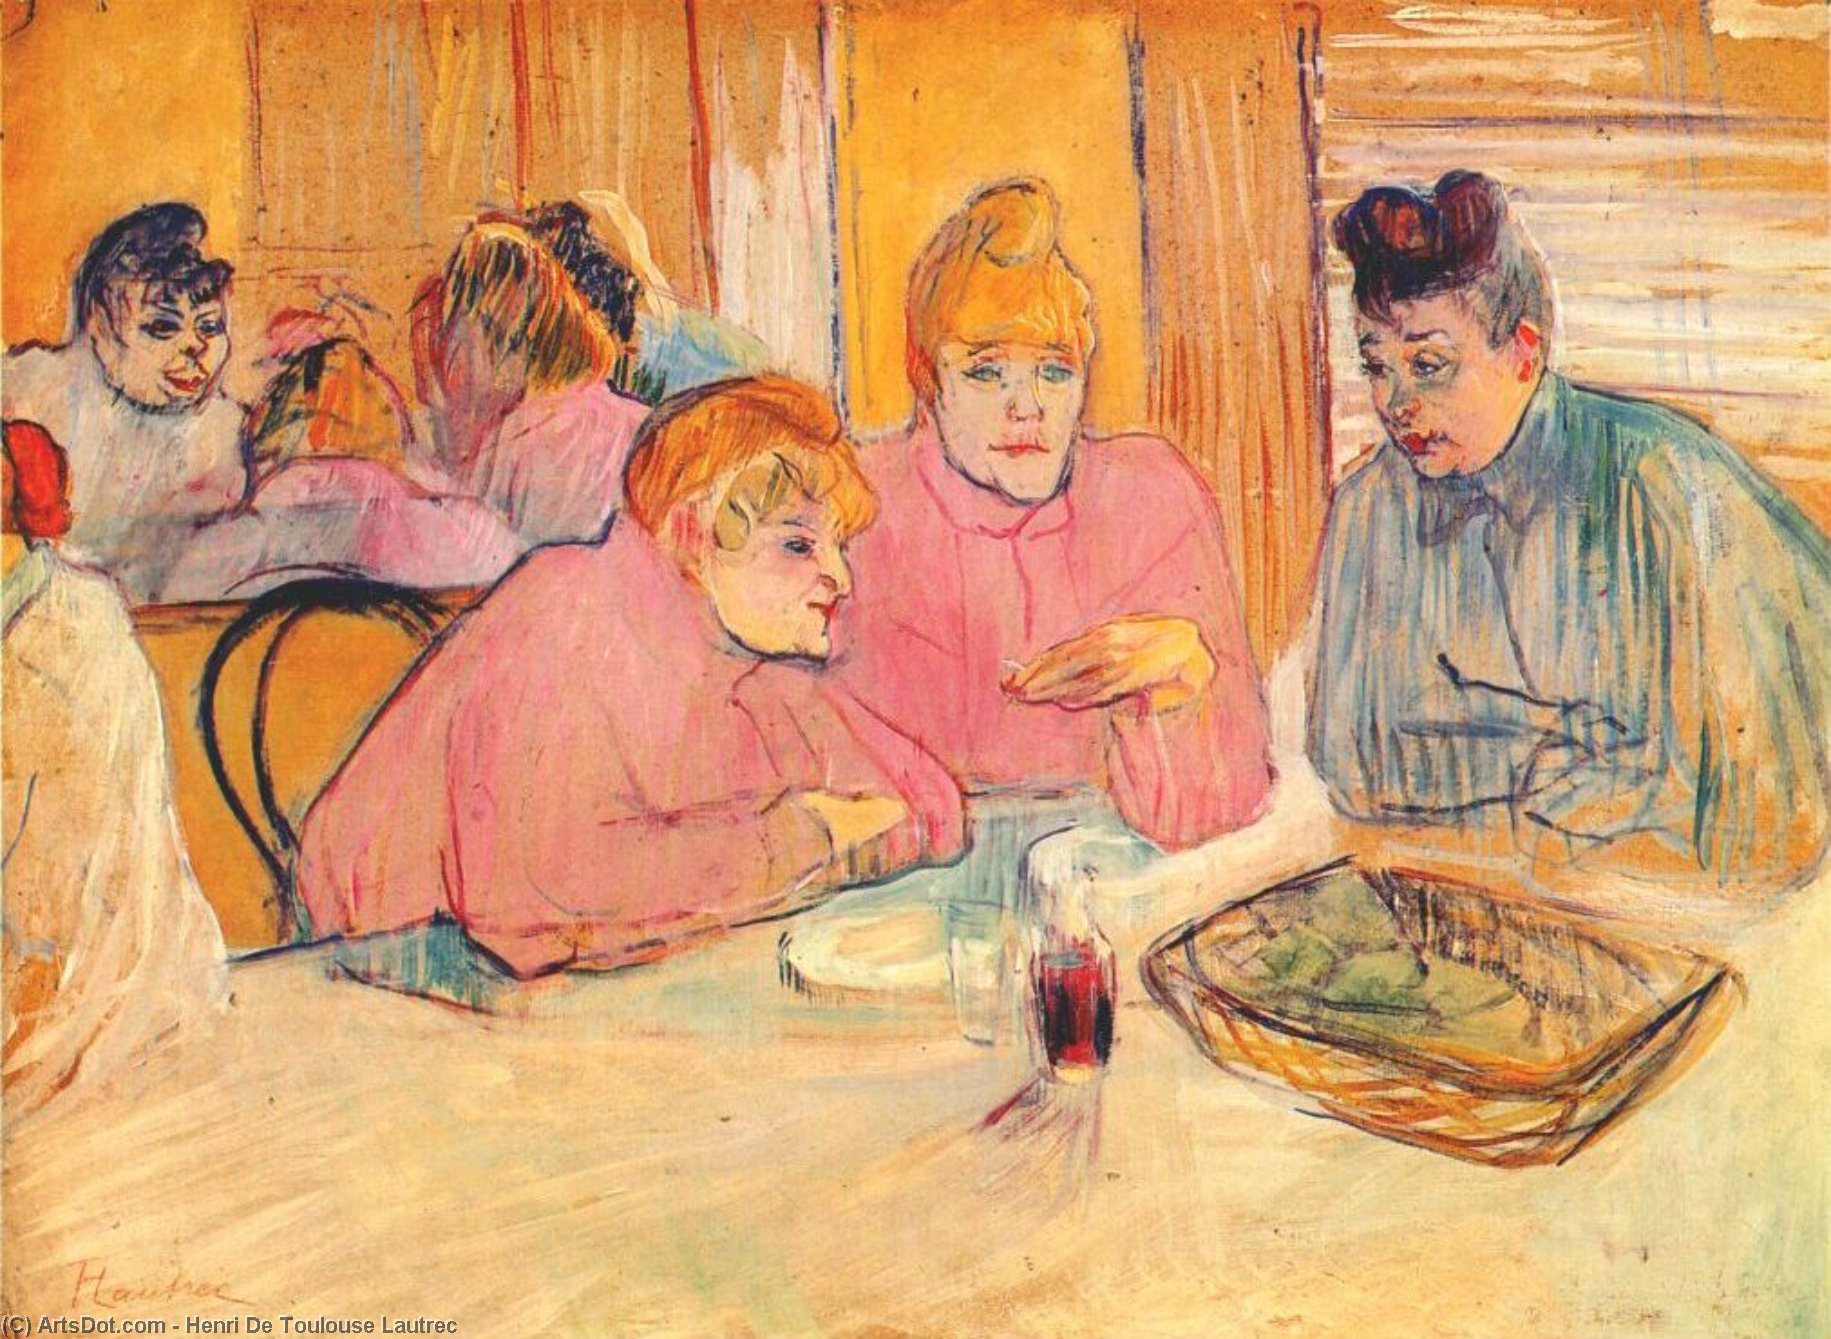 Prostitutes Around a Dinner Table, Oil On Canvas by Henri De Toulouse Lautrec (1864-1901, France)